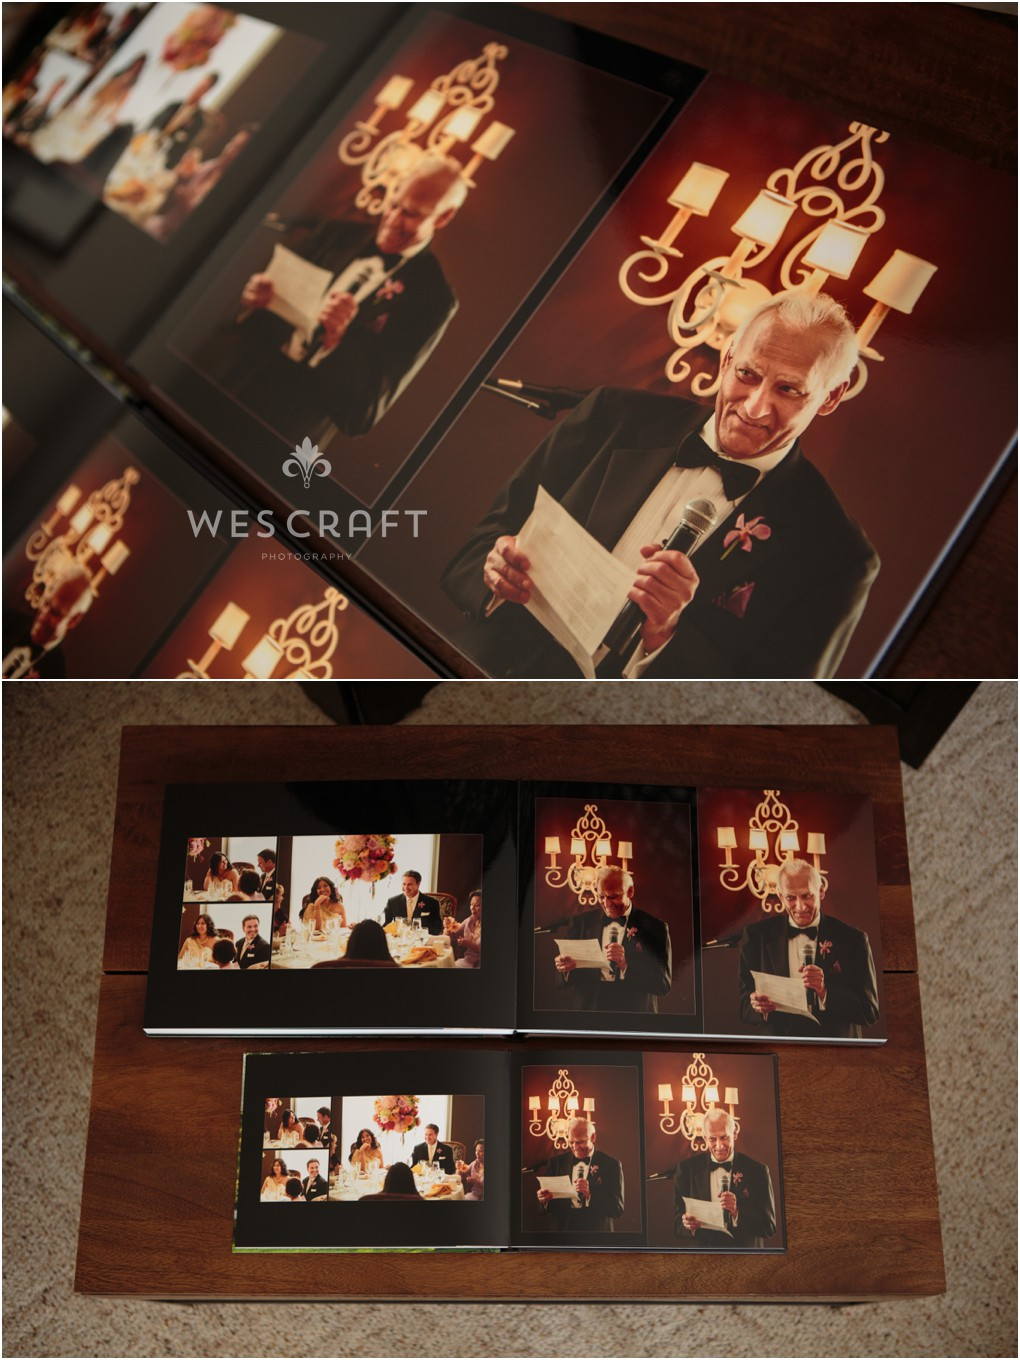 When your father gives such a great speech he deserves his own copy of the wedding album.  The parent books are mini replicas of the master album and share the same design.